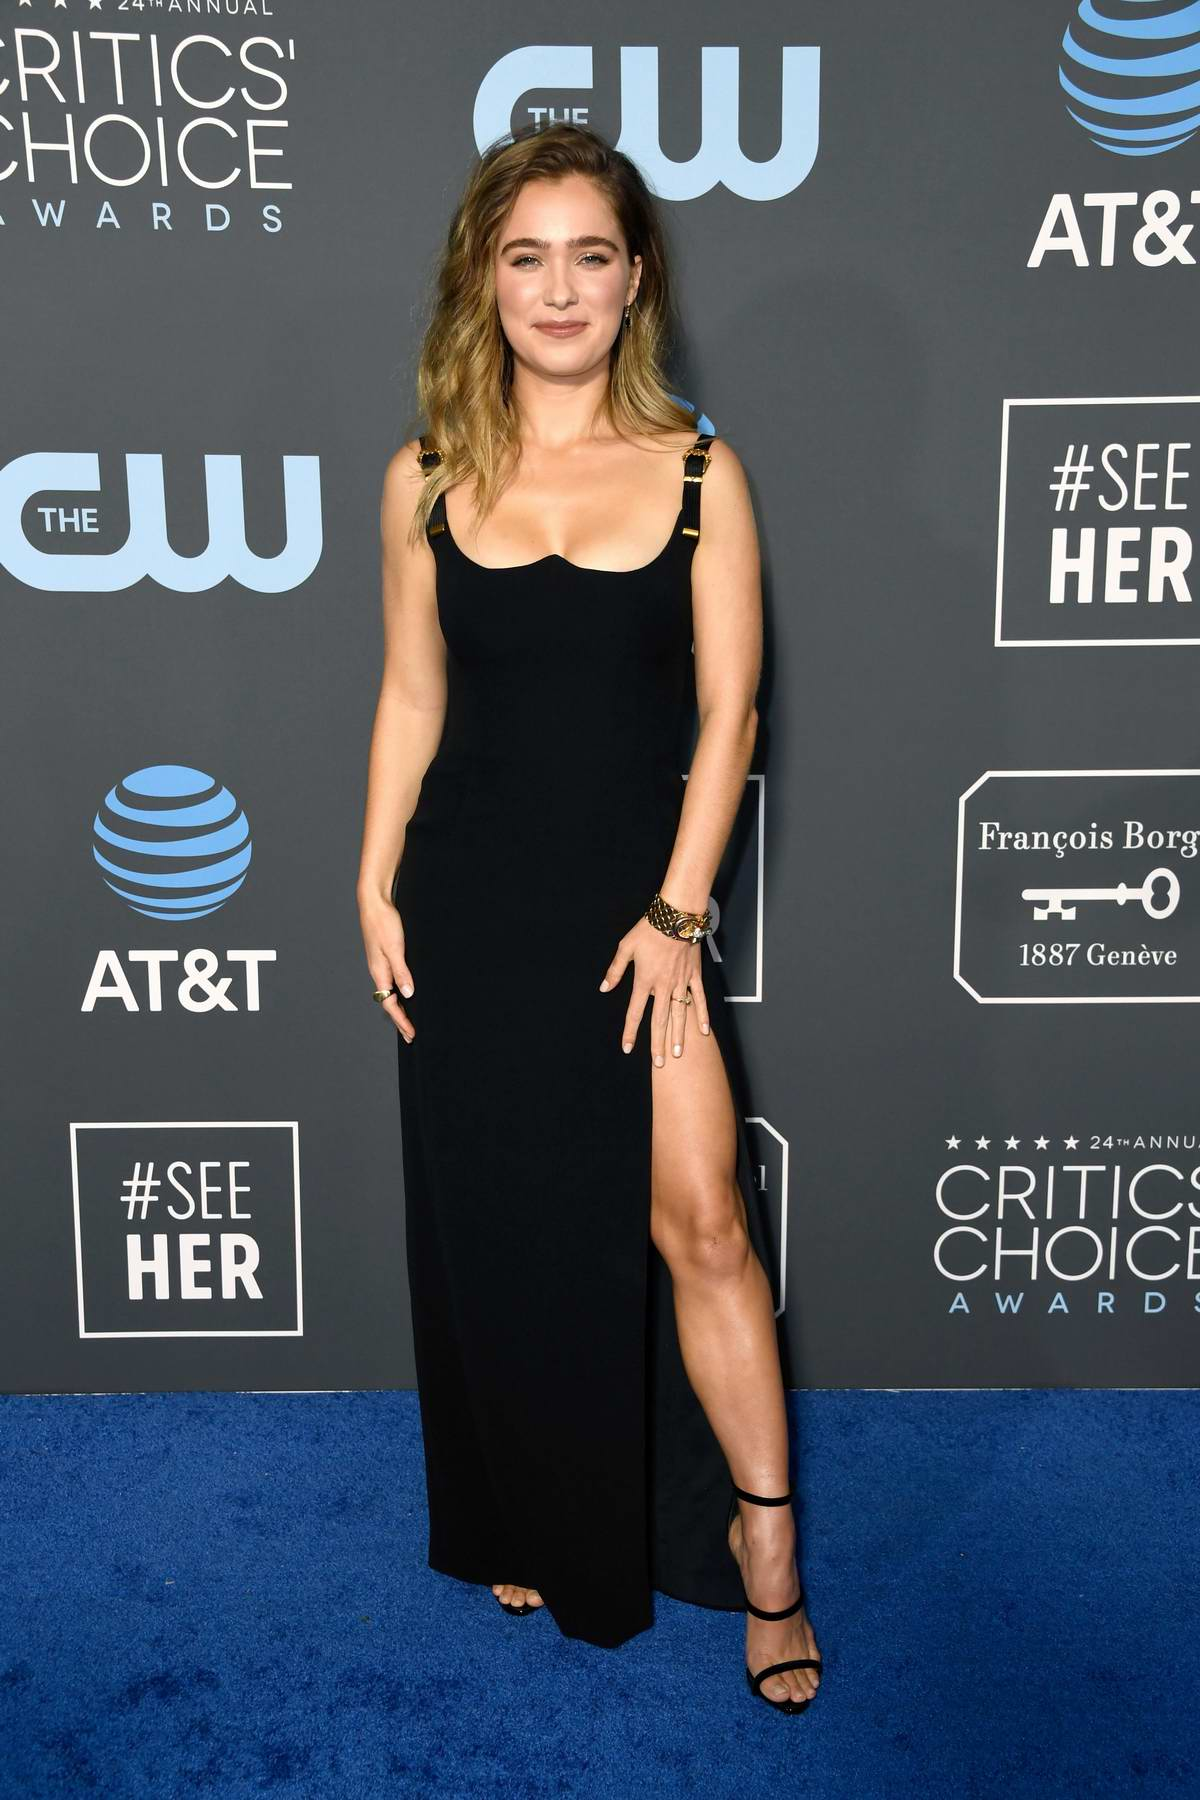 Haley Lu Richardson attends the 24th Annual Critics' Choice Awards at Barker Hangar in Santa Monica, California